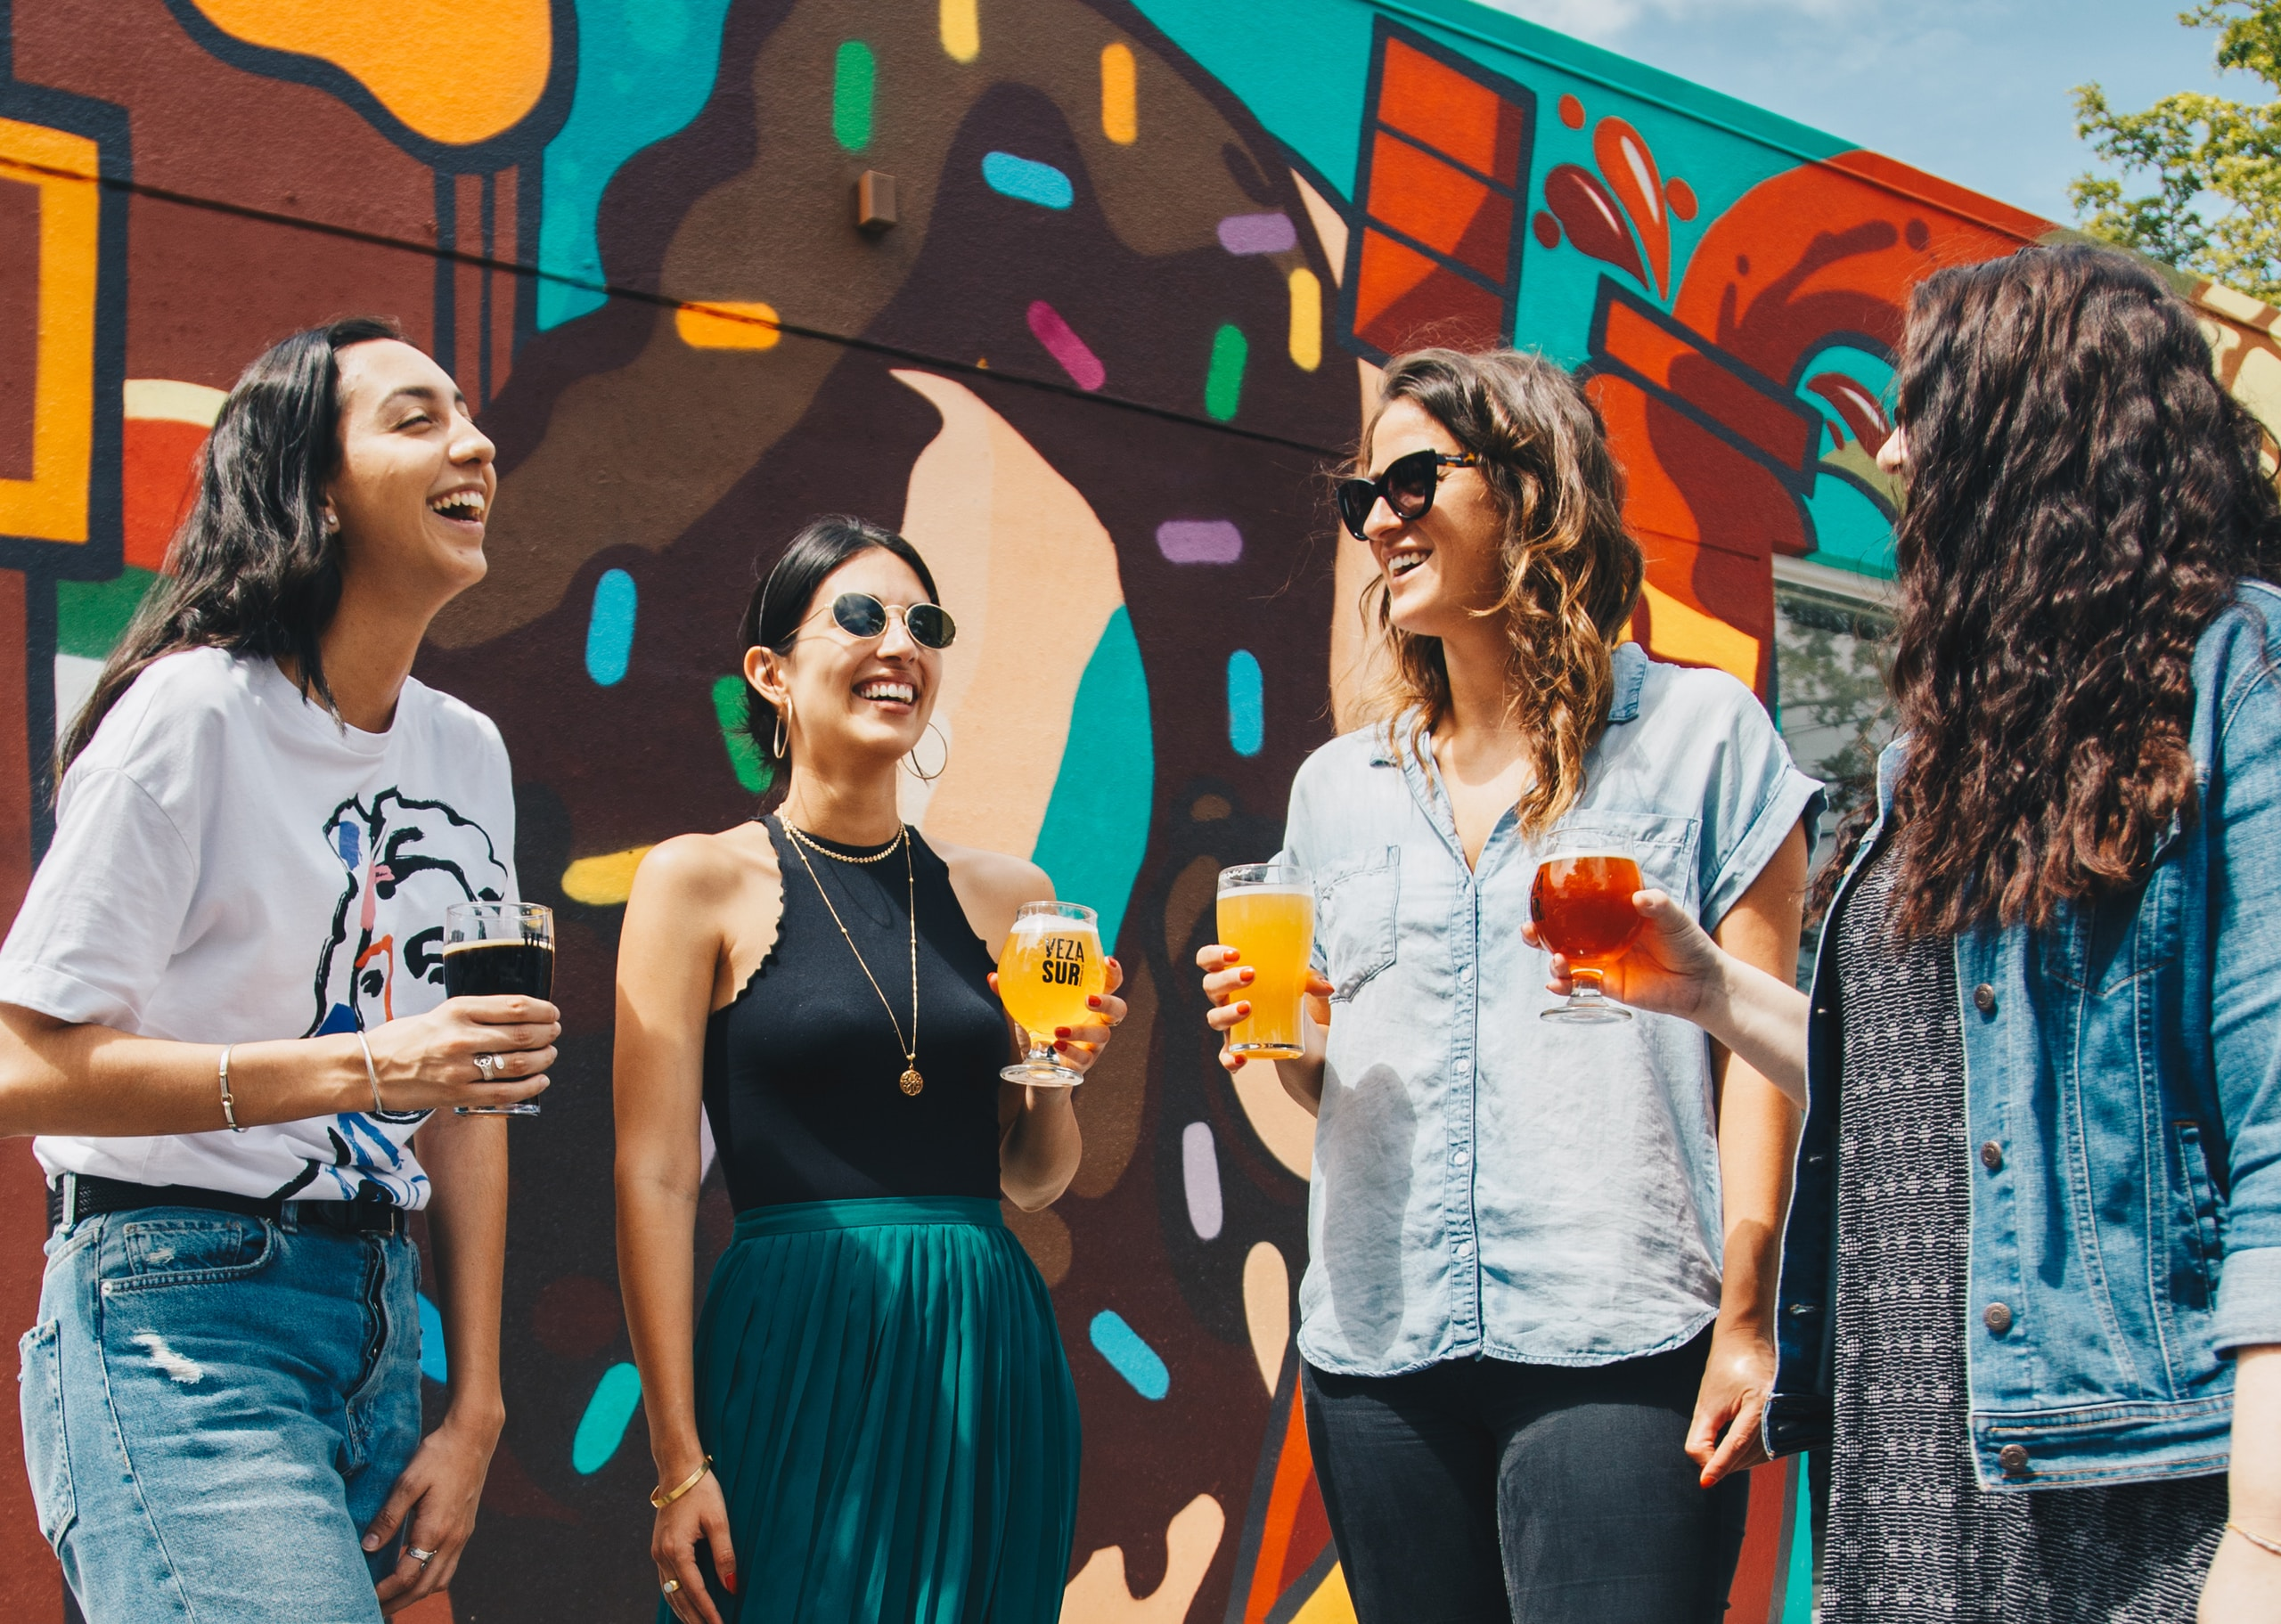 four women holding drinks while laughing together during daytime